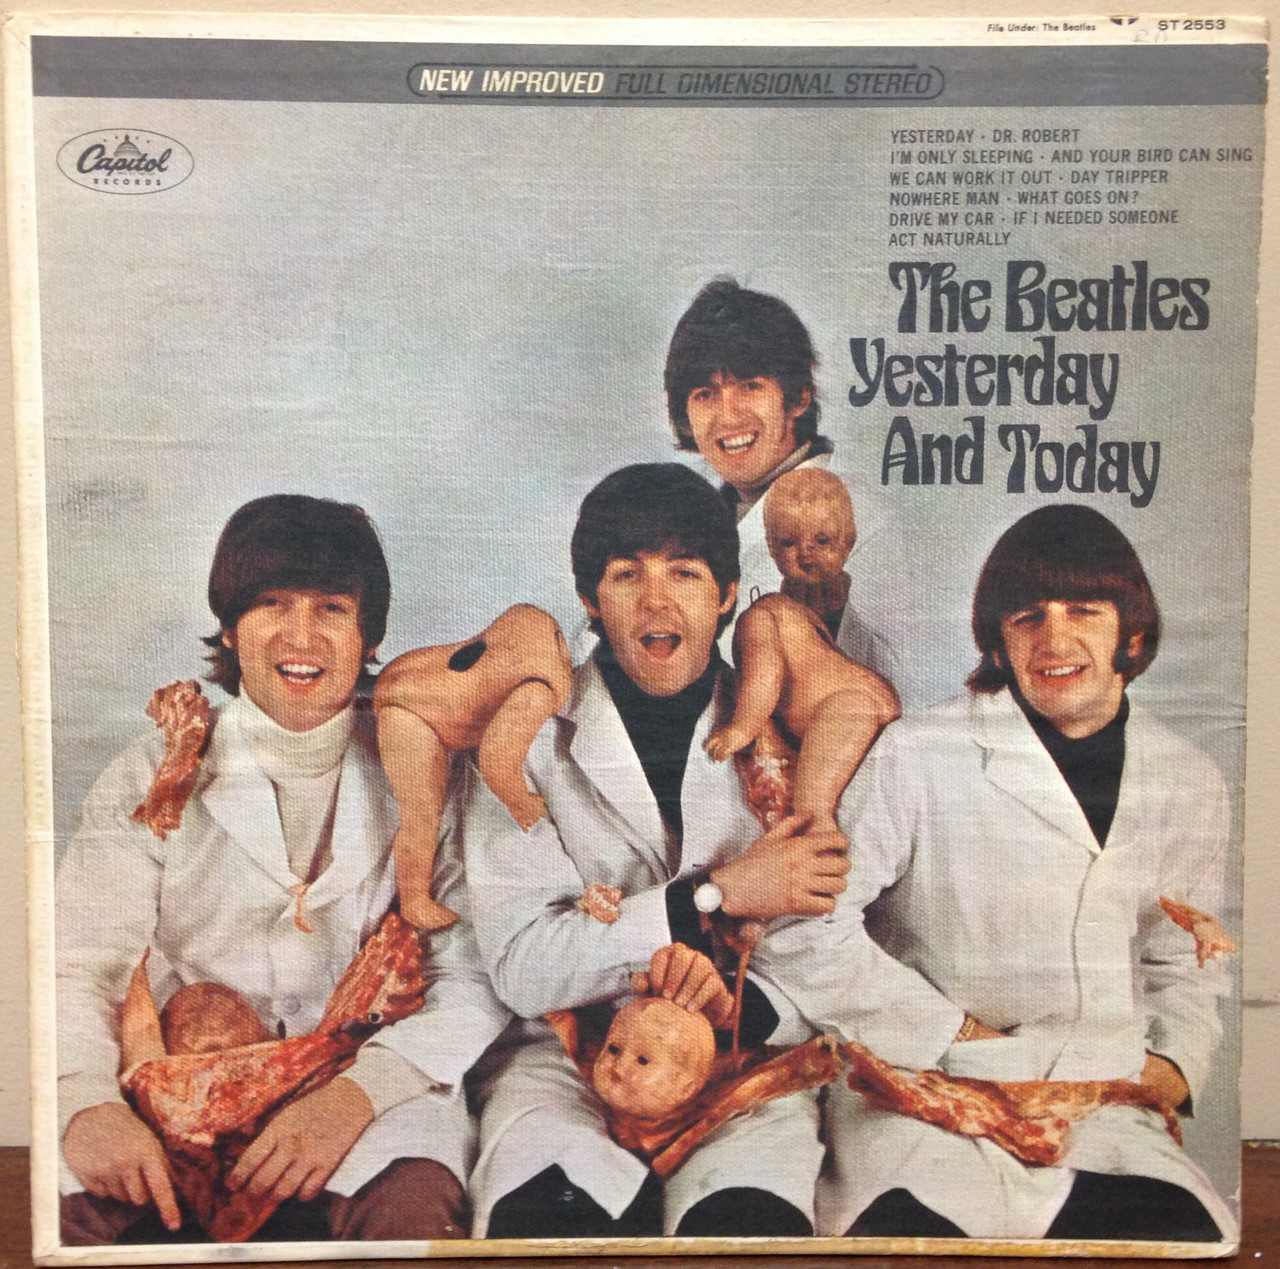 *USED* Beatles Yesterday and Today Butcher Cover 3rd State LP